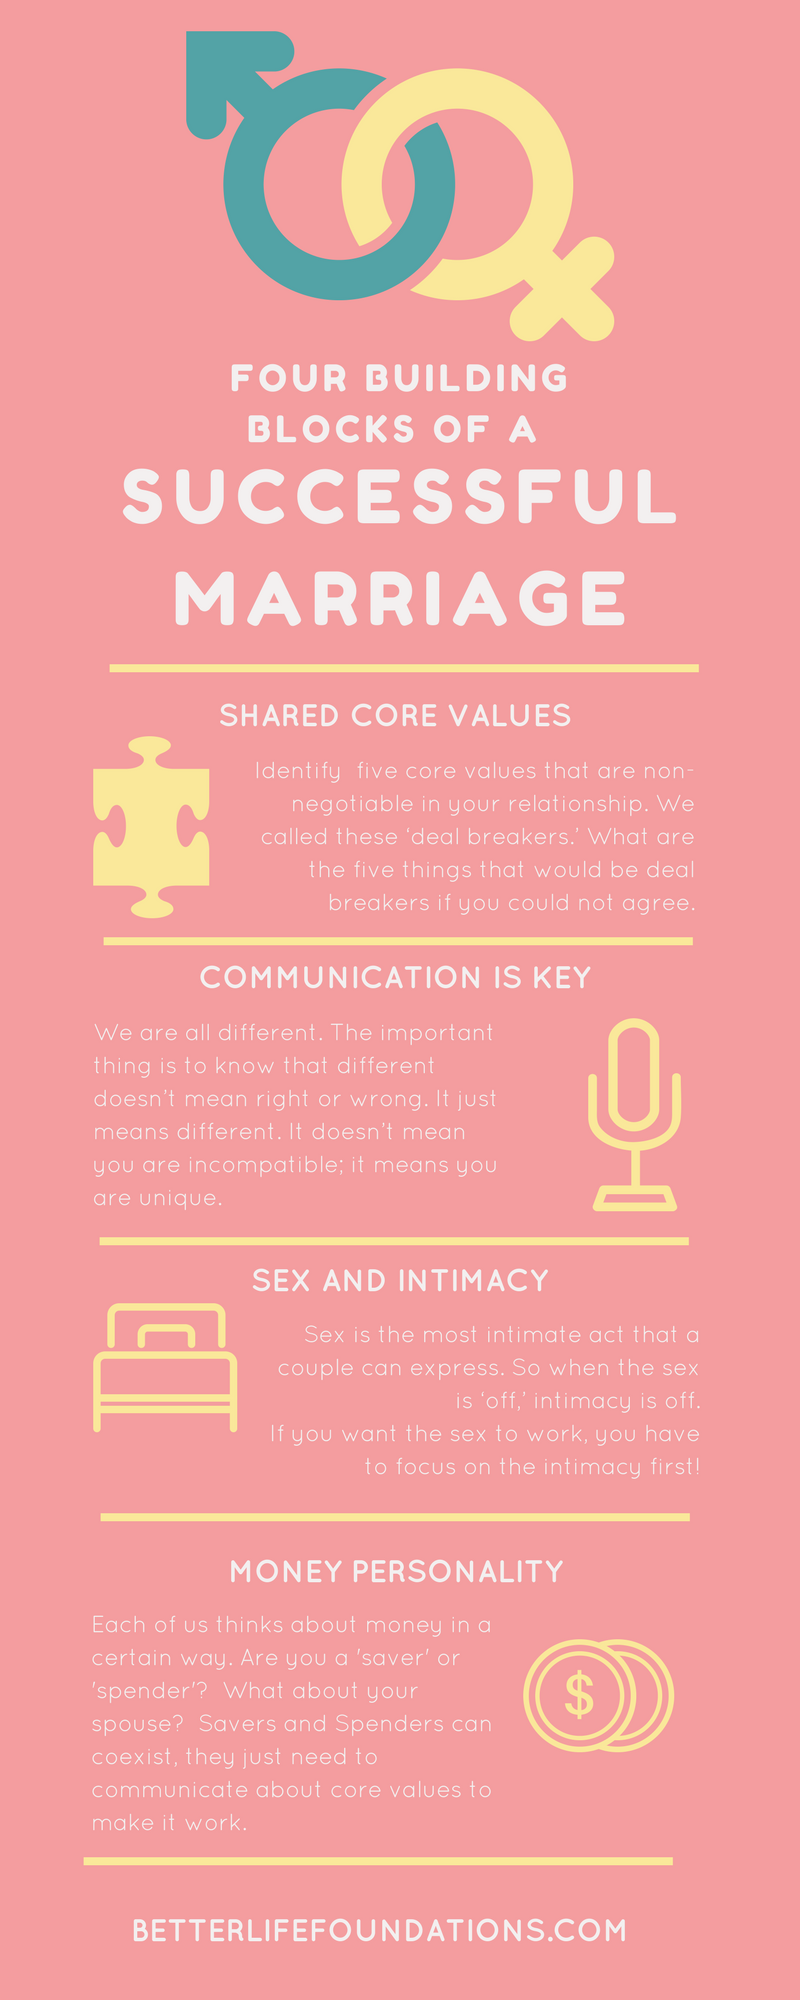 4 Building Blocks of a Successful Marriage